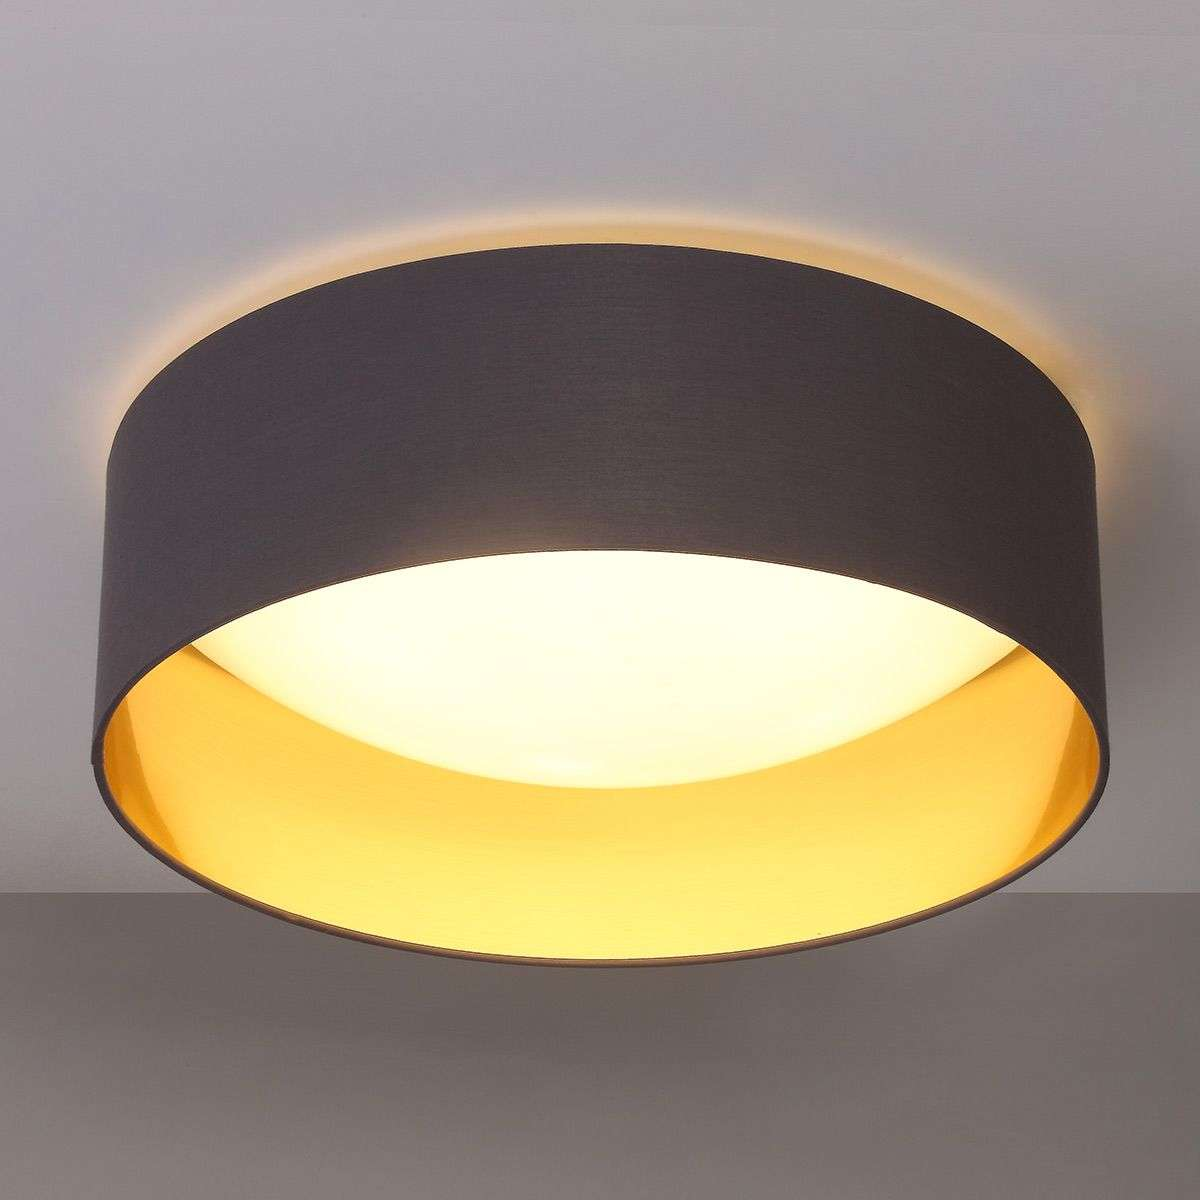 Fabric ceiling light coleen in grey gold inside lights fabric ceiling light coleen in grey gold inside aloadofball Choice Image